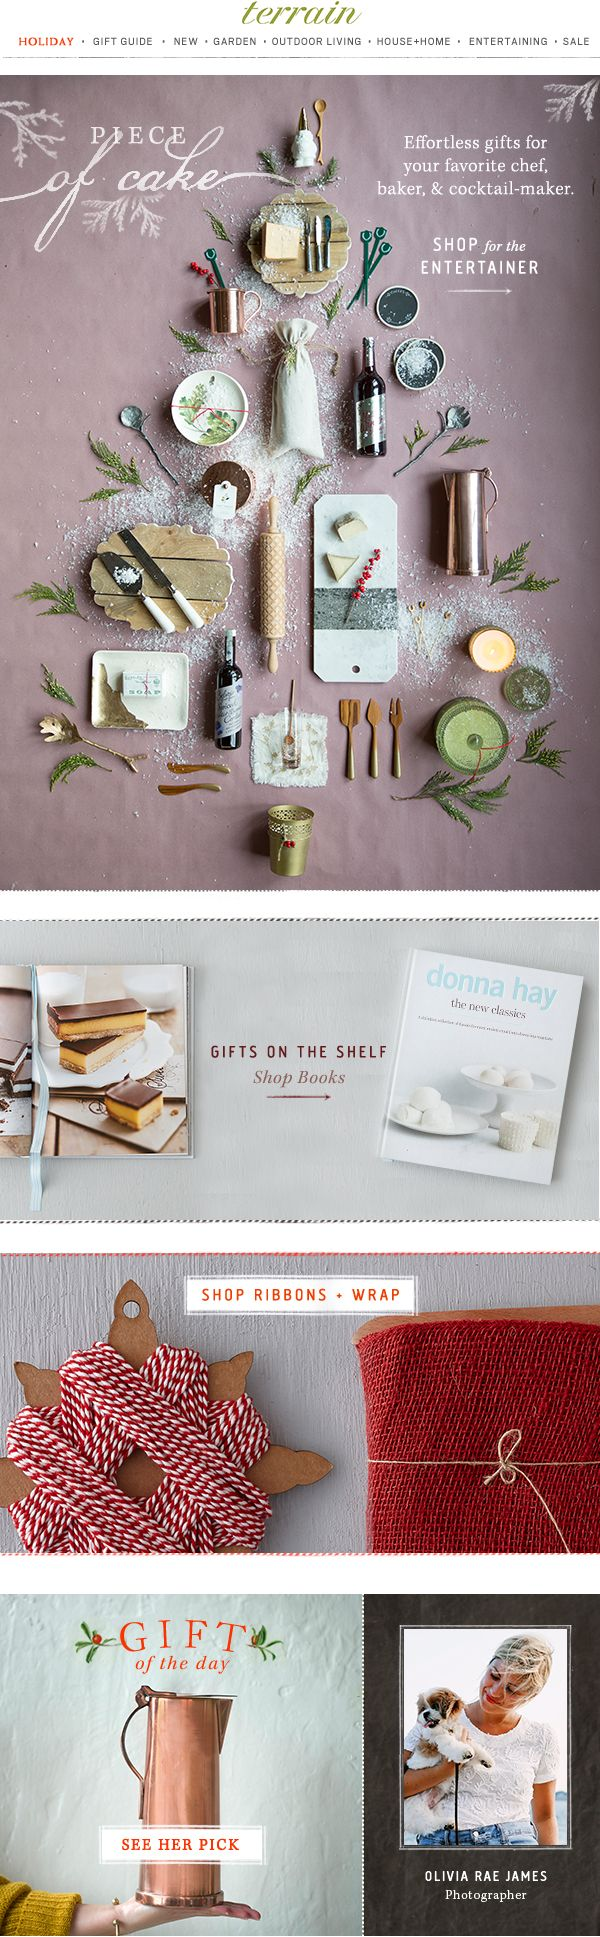 Entertaining #gifts for your favorite #chef, #baker, and cocktail-maker at #shopterrain December 5